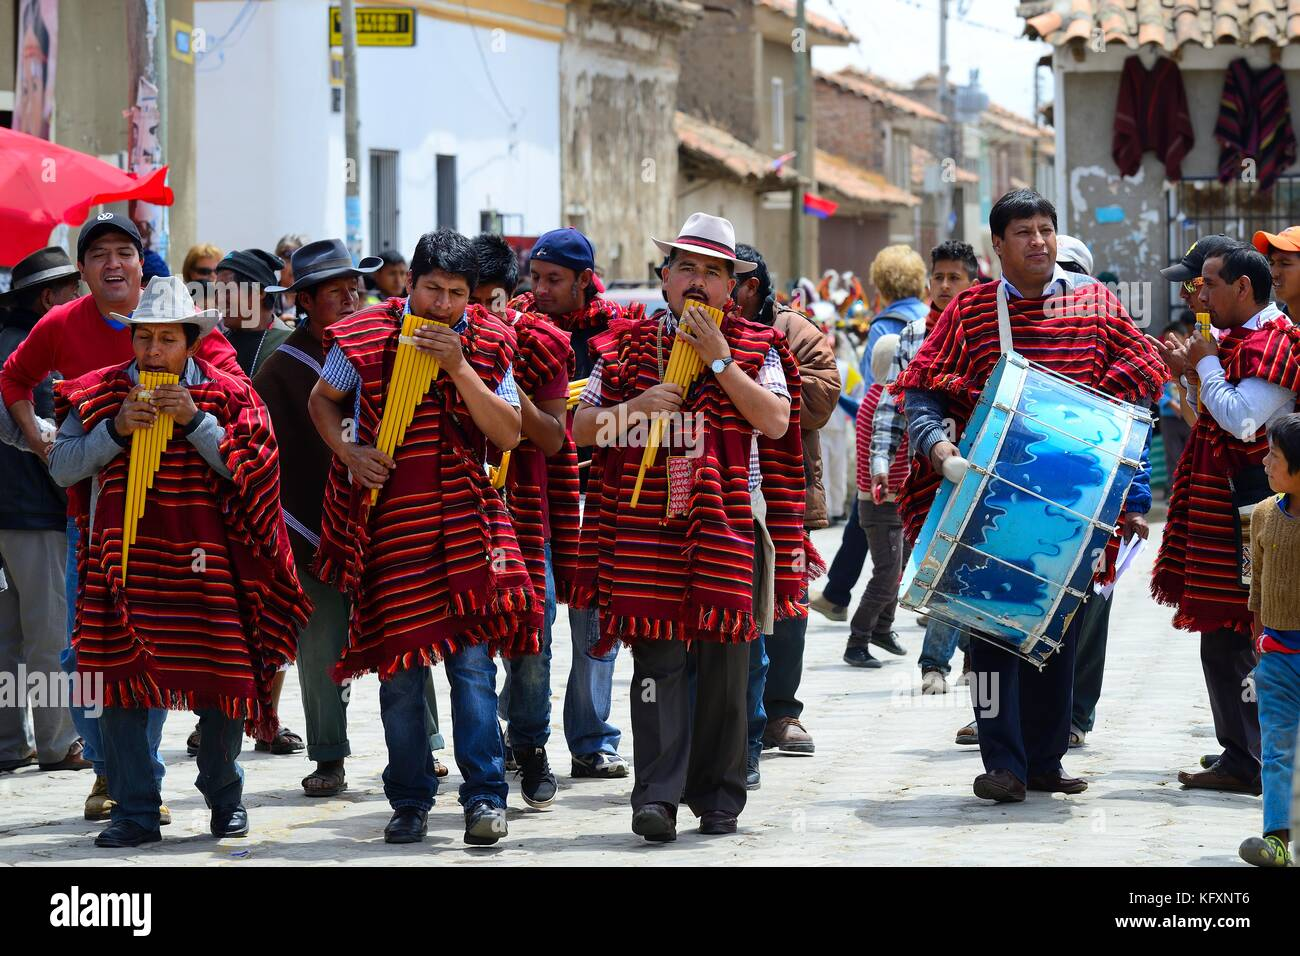 Music group in Ponchos with Siku, Panflute, Festividad Virgen del Rosario, Tarabuco, Chuquisaca, Bolivia - Stock Image